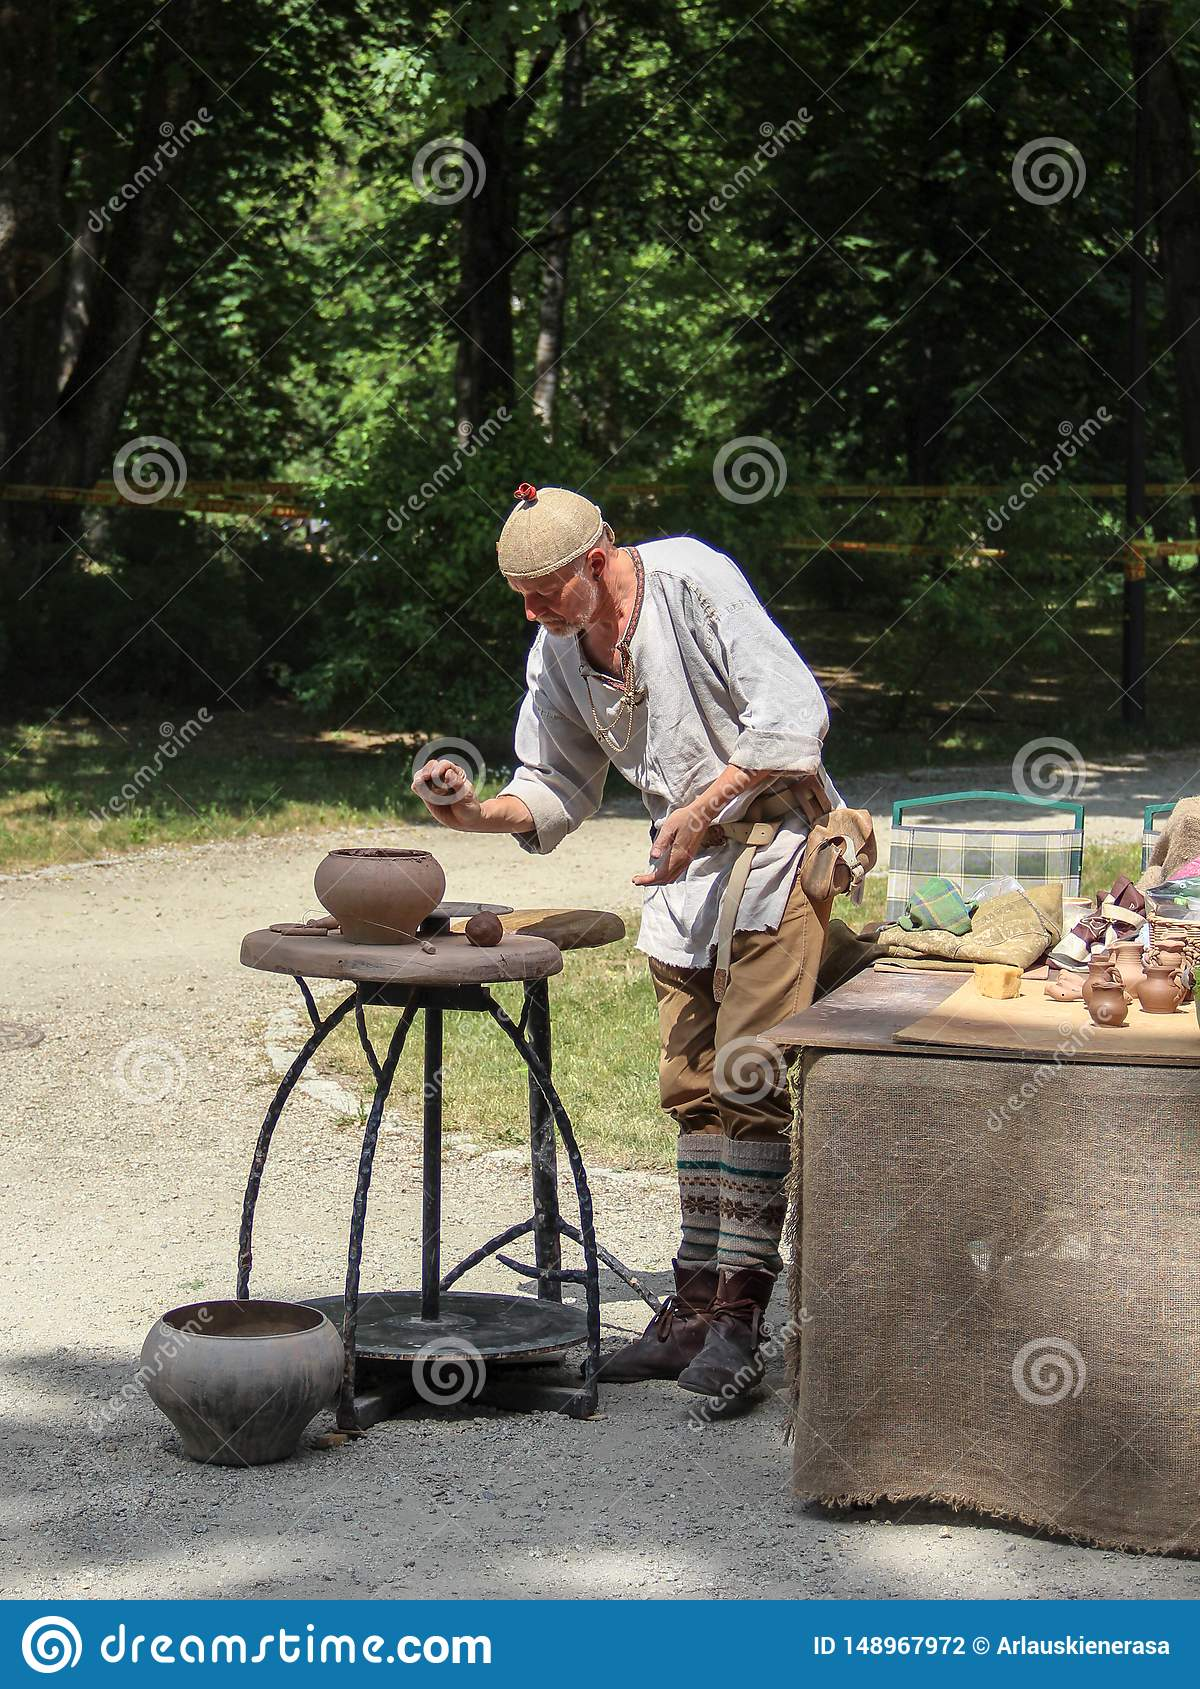 A man demonstrating old potter crafts